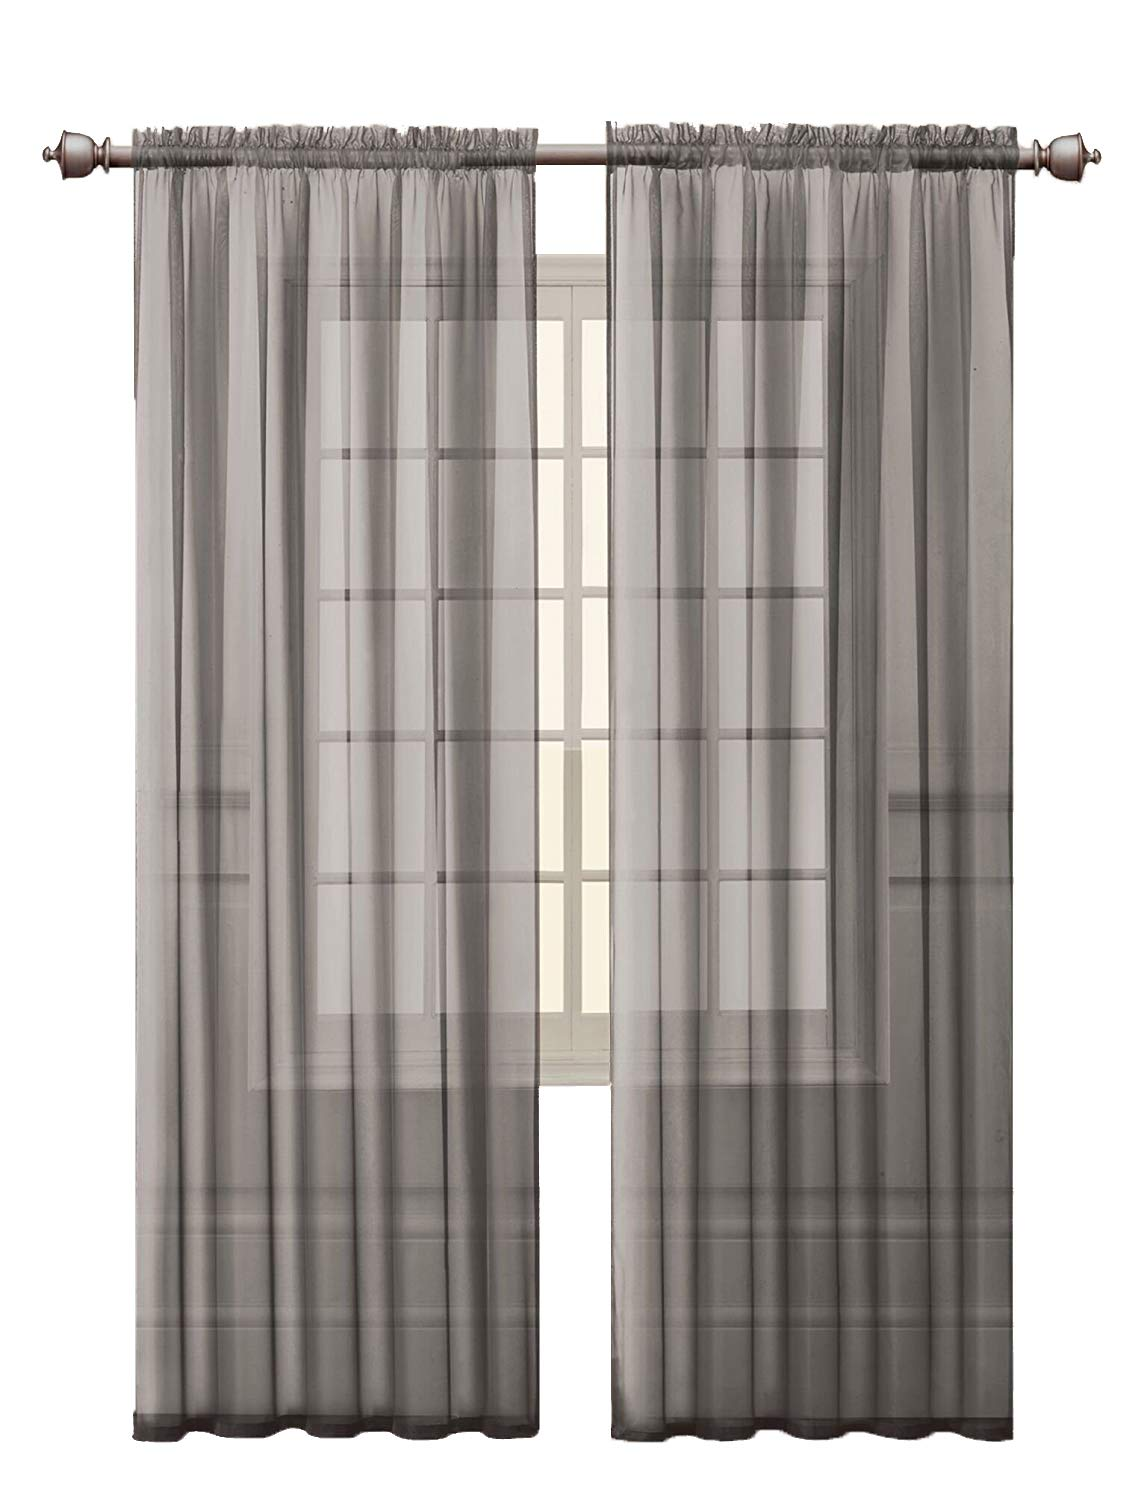 Victoria Classics 2 Pack: Ultra Luxurious High Thread Rod Pocket Sheer Voile Window Curtains by Assorted Colors (Gray)